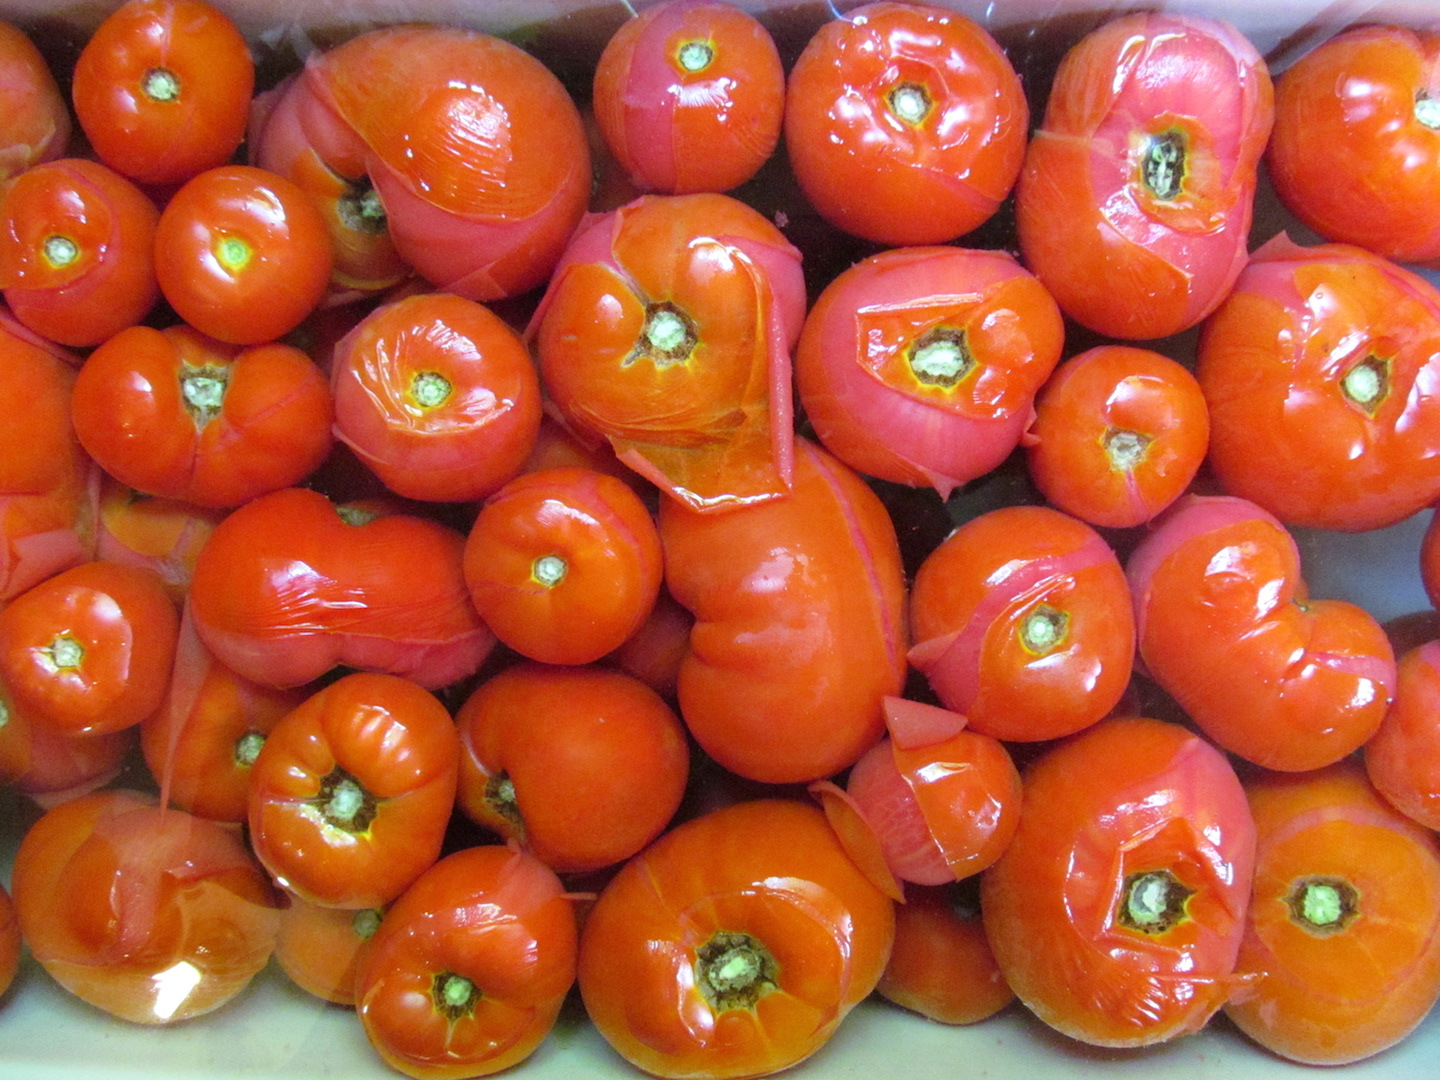 Tomatoes for canning